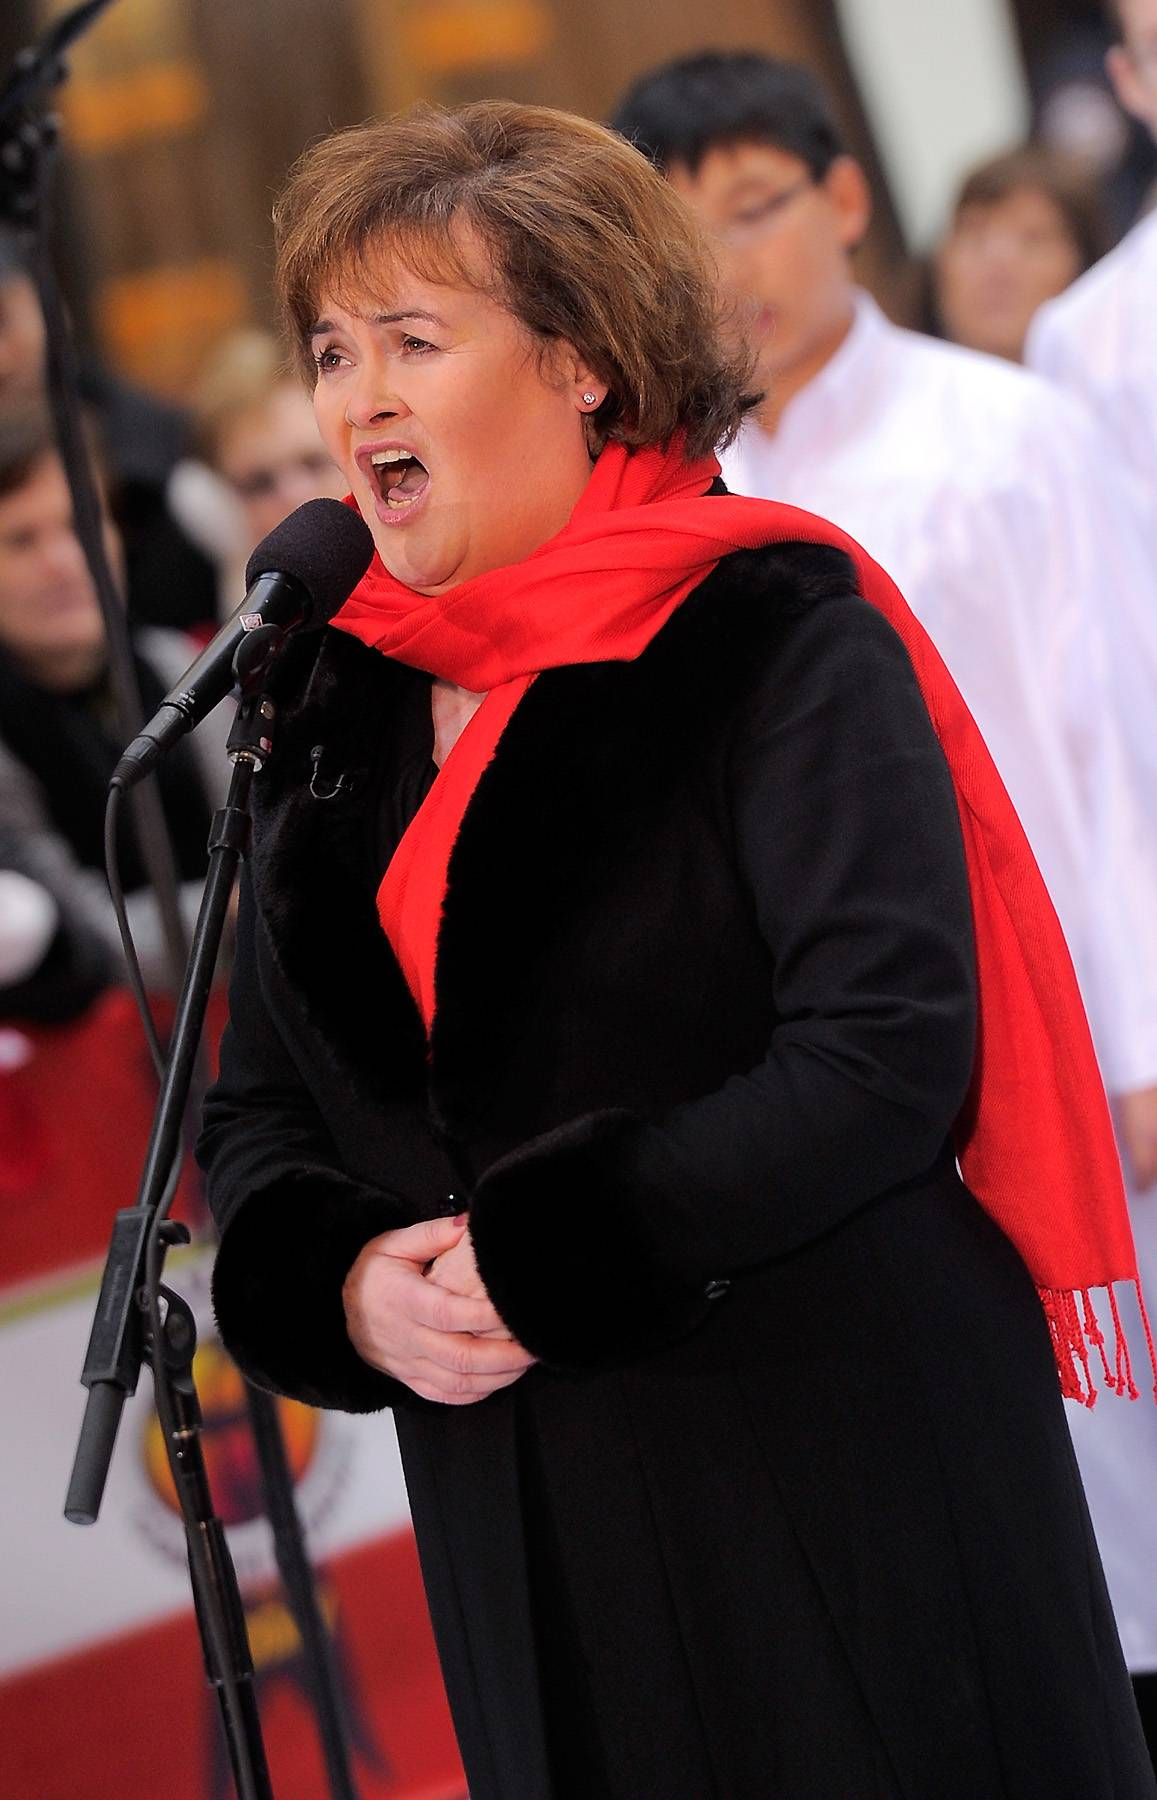 011912-shows-lets-stay-together-you-tube-susan-boyle.jpg